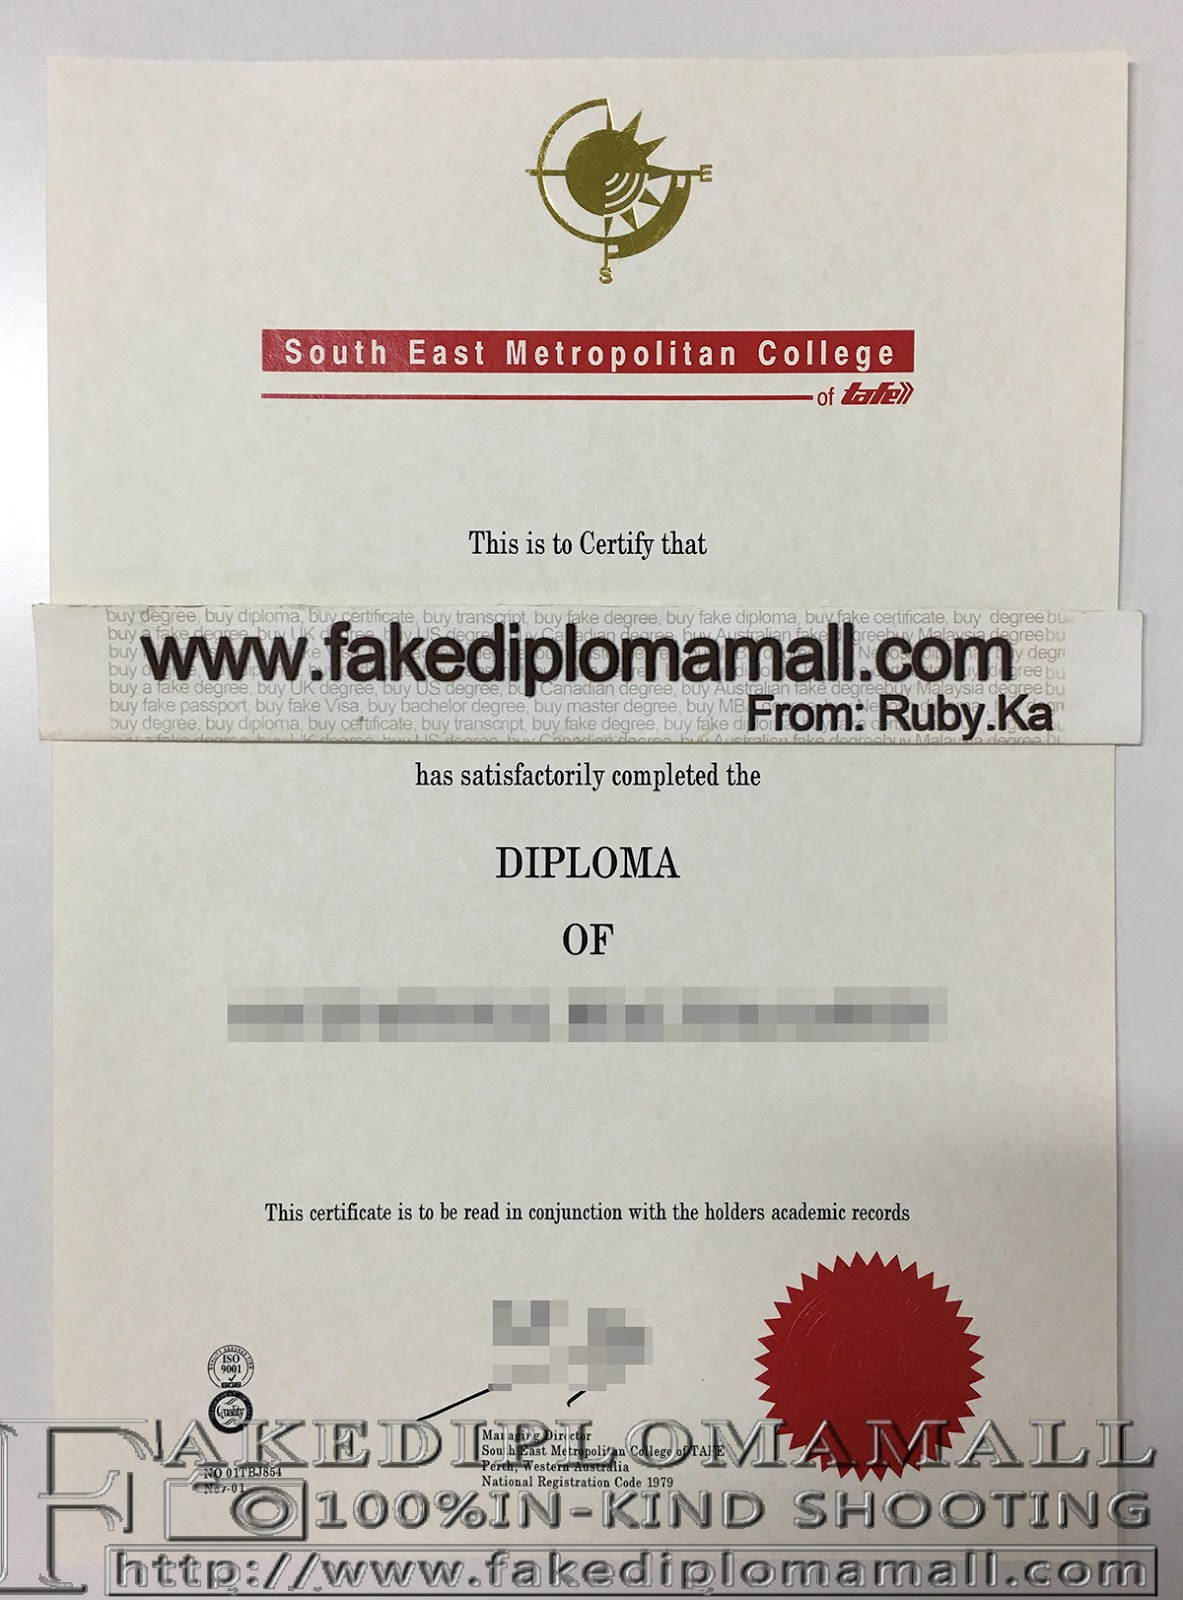 How to get a cfa certificate quickly how to buy a fake diploma a plenty of fake diplomas we supply just let us know the name of the certificate we create the original copy for you buy south east metropolitan college xflitez Choice Image